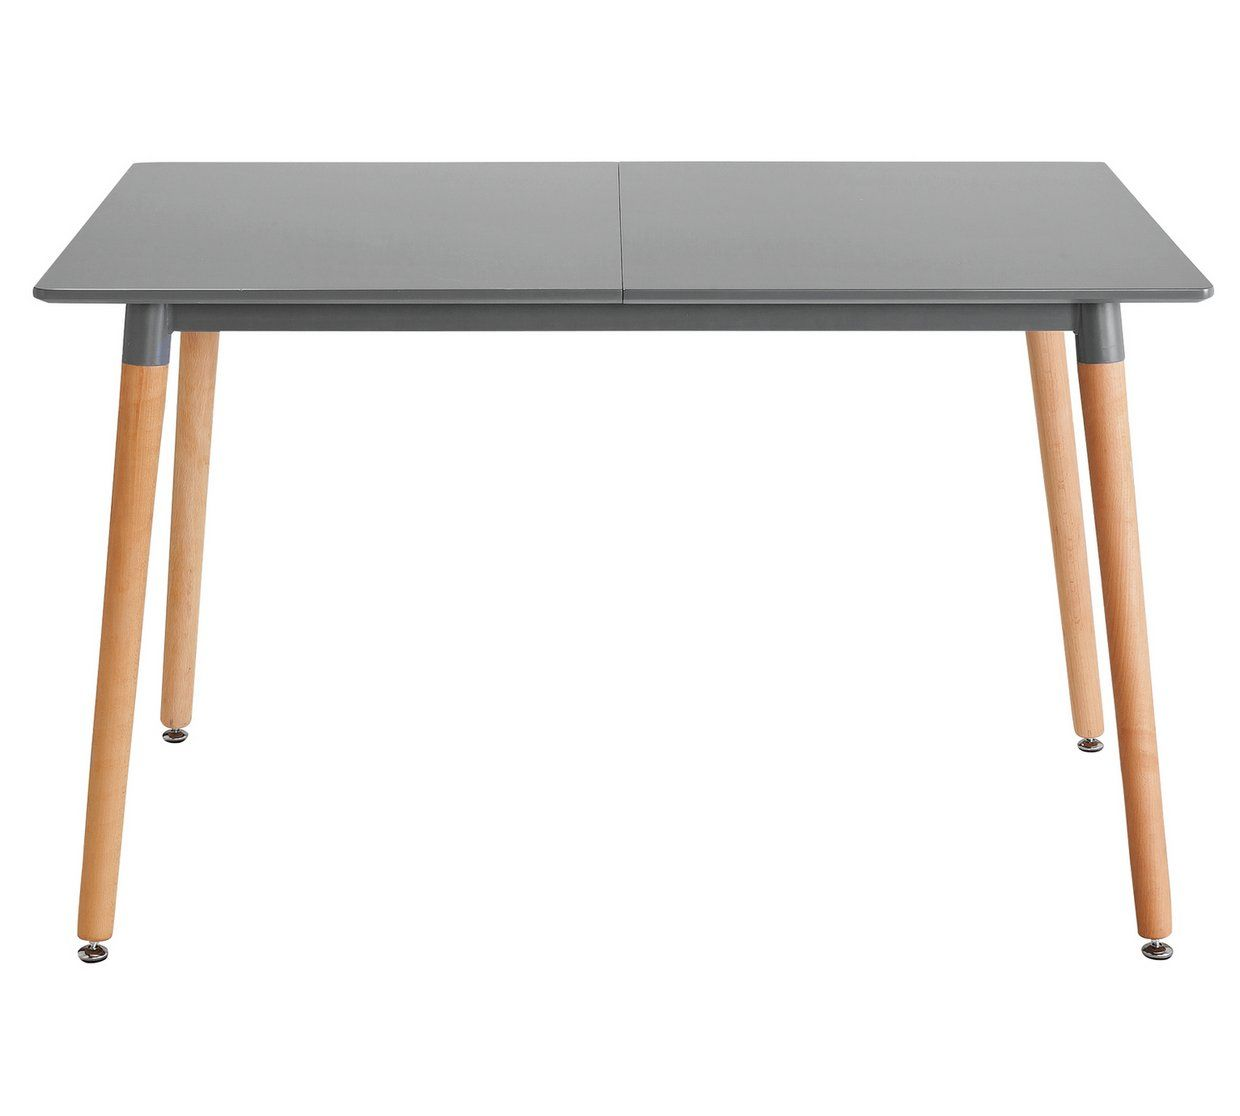 Argos White Dining Table And 6 Chairs: Buy Argos Home Charlie Extendable 4-6 Seater Dining Table